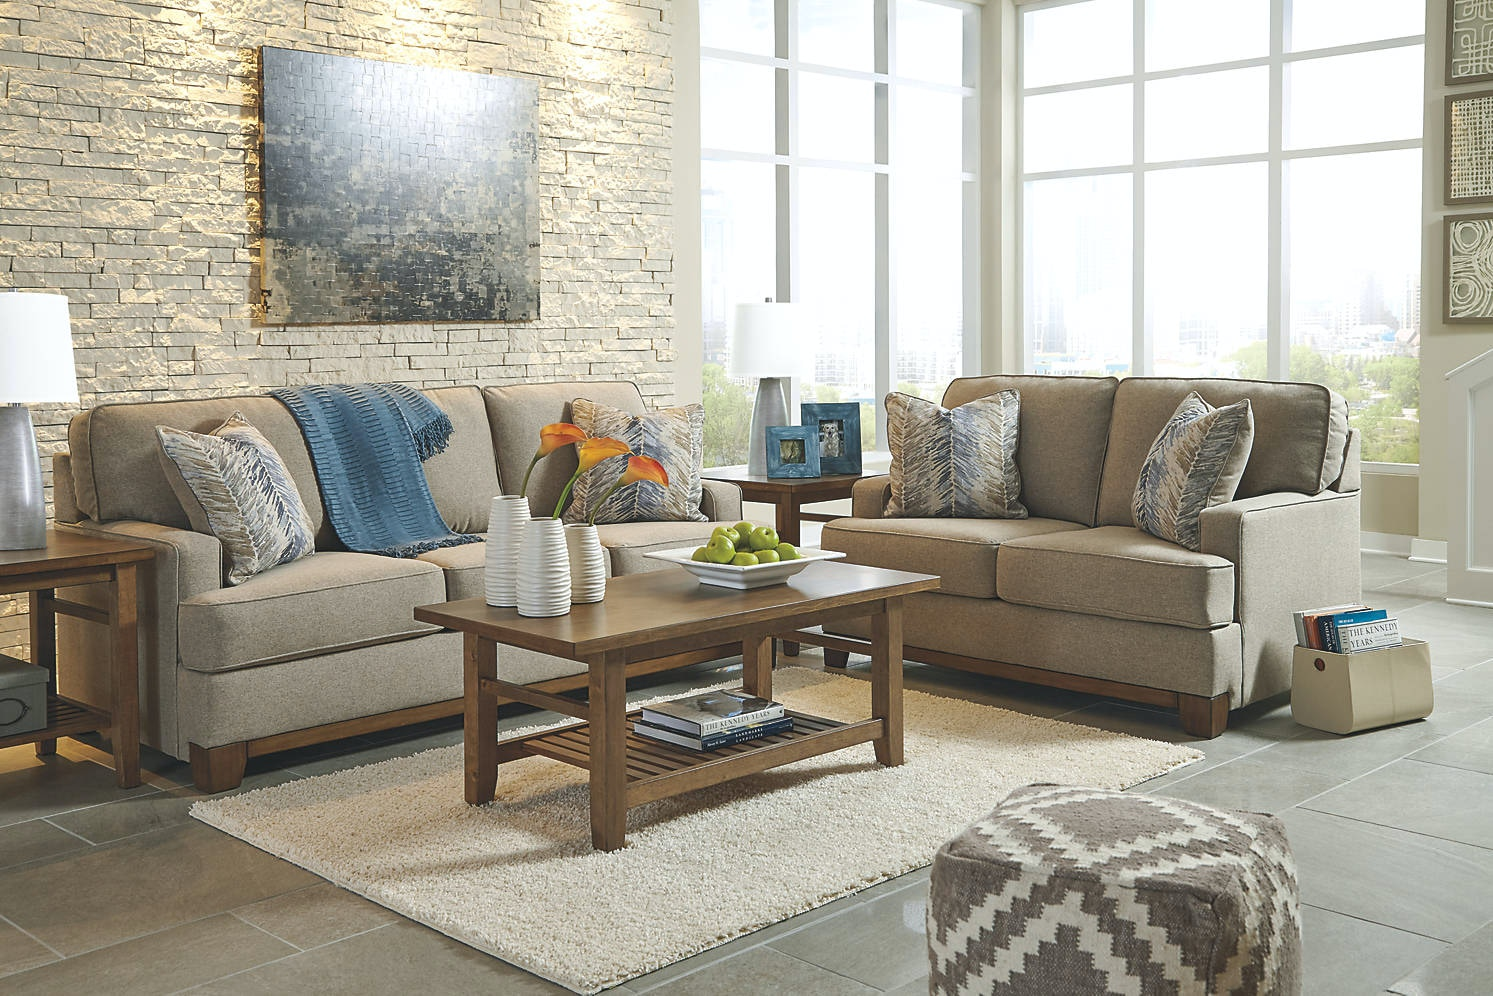 Beau ASHLEY FURNITURE INDUSTRIES ASHLEY HILLSWAY PEBBLE 5 PIECE LIVING ROOM SET  RSPKAS34104A